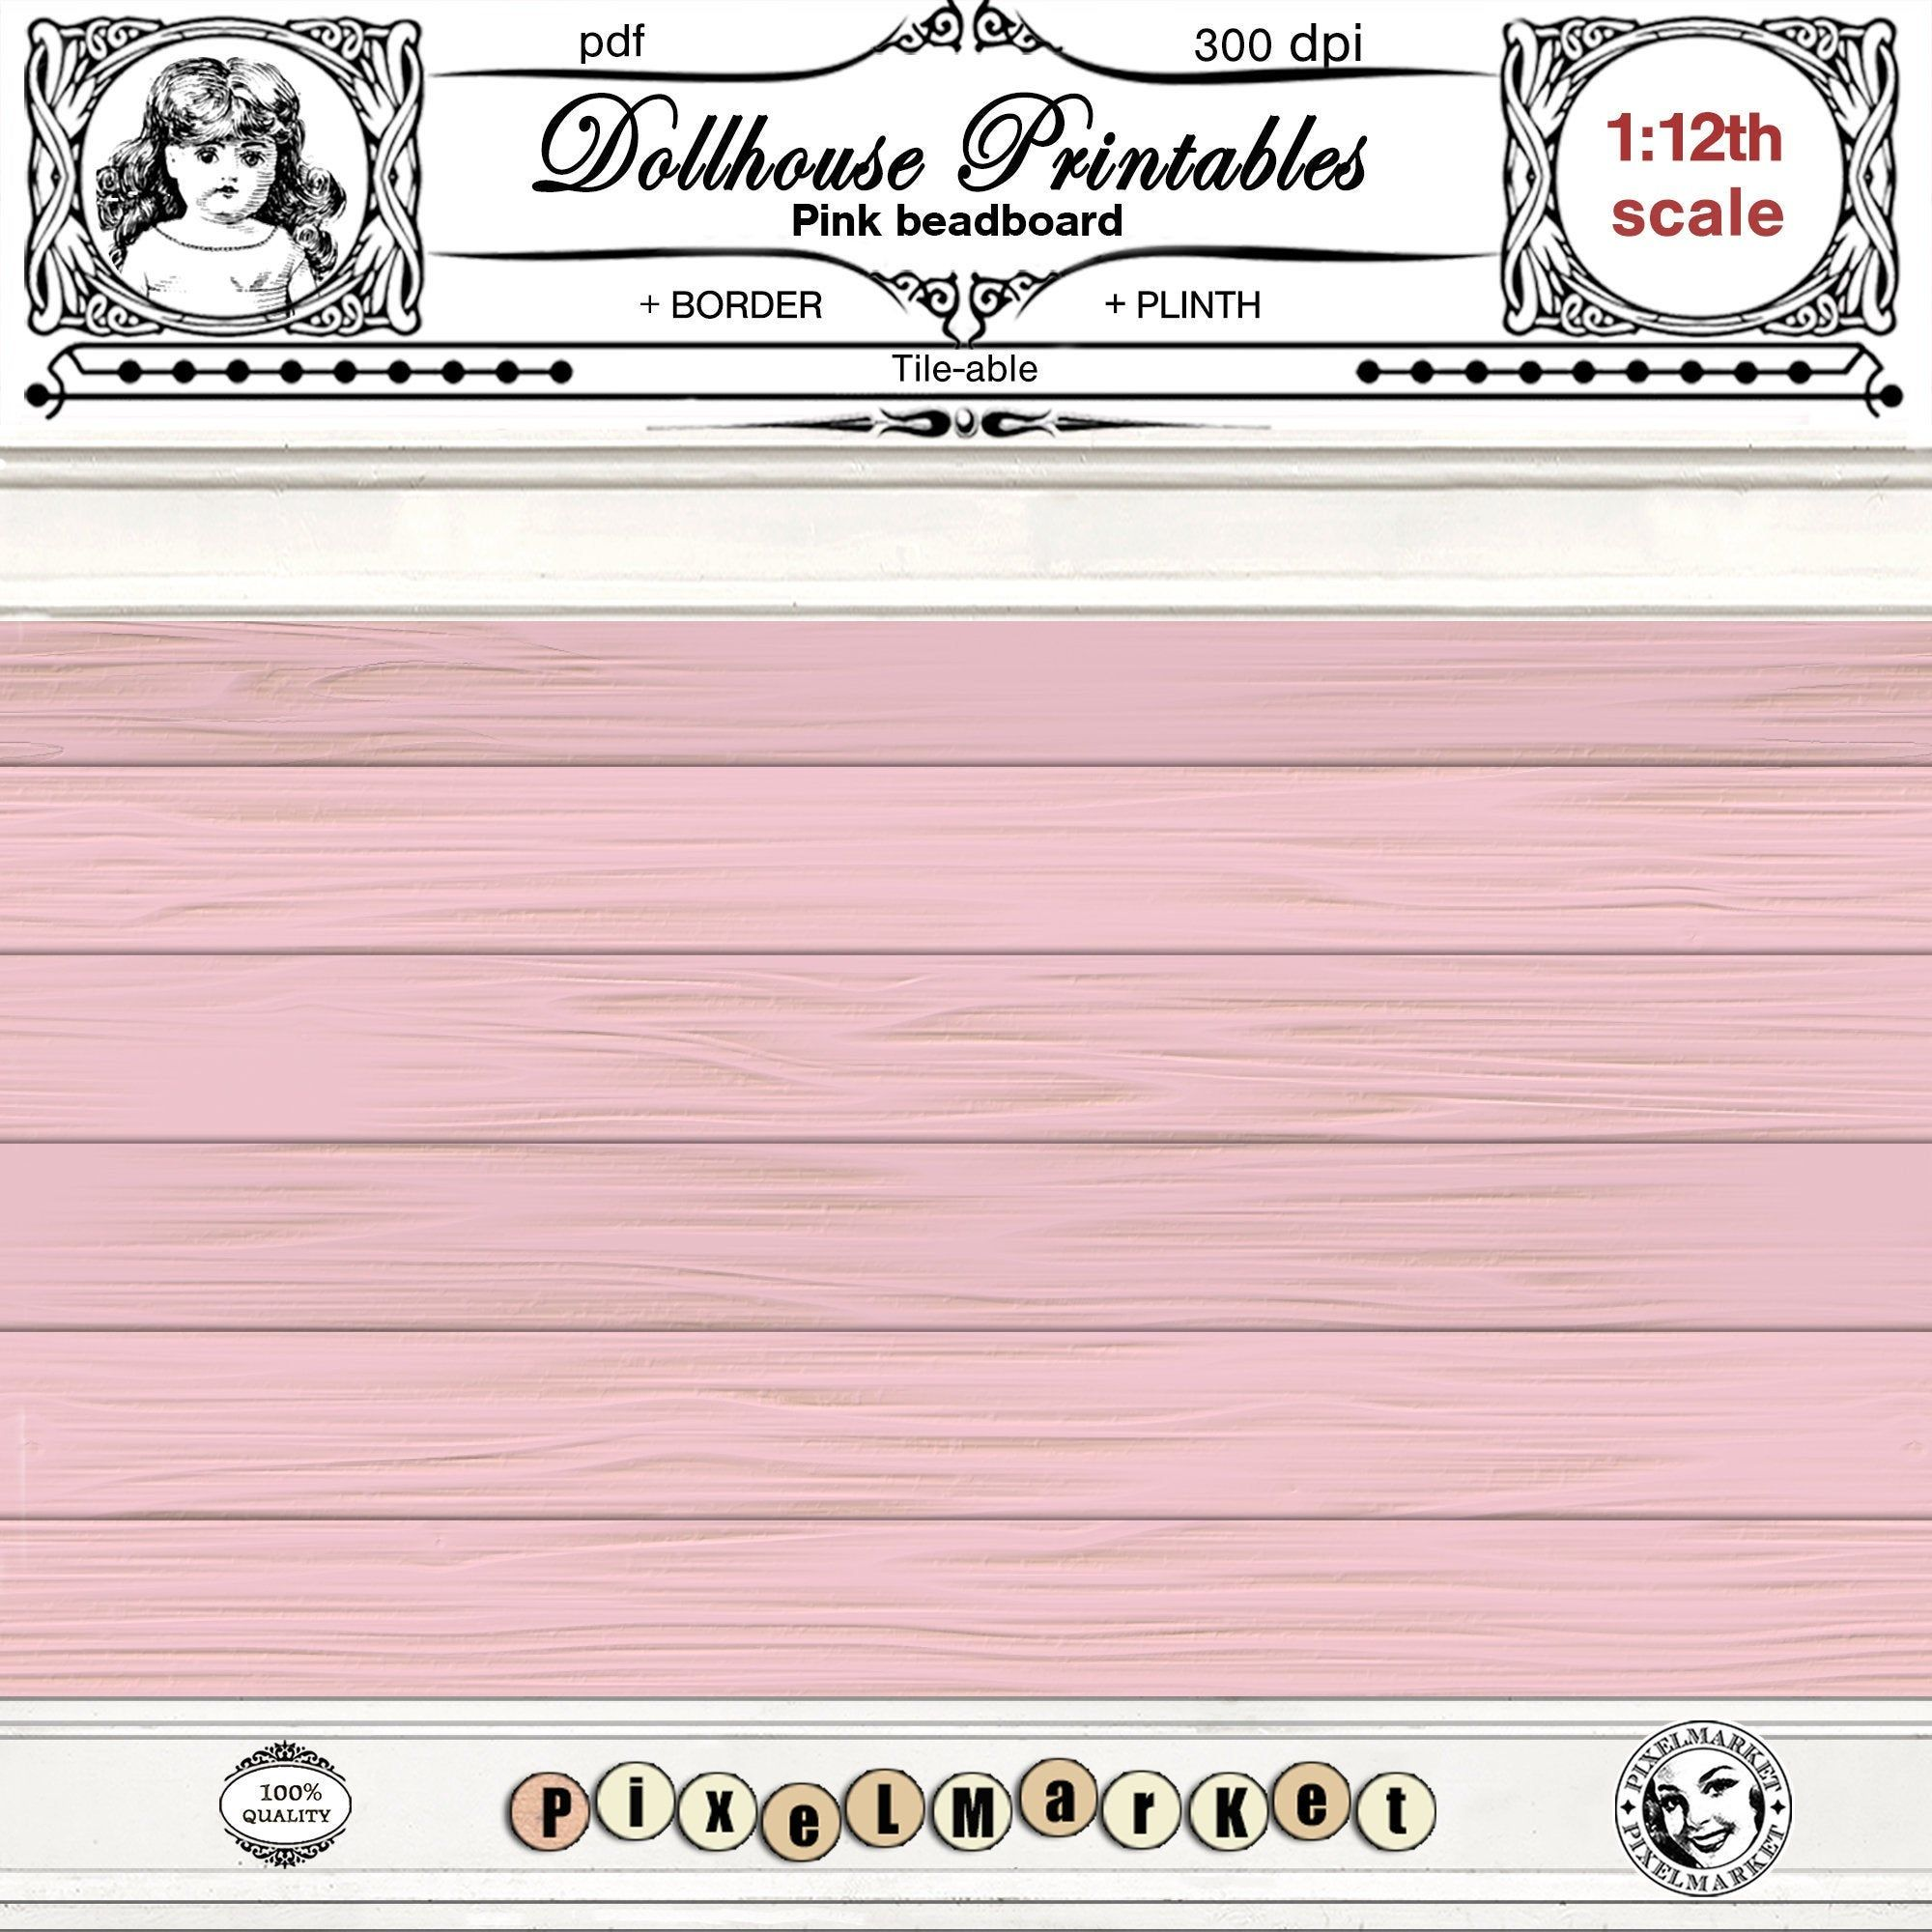 Dollhouse Wallpaper Printable Beadboard 1 12 Farmhouse Siding Pink Wooden Plank Large Sheet Digital Download For Diorama Roombox Ceiling In 2020 Printables Doll House Printed Sheets